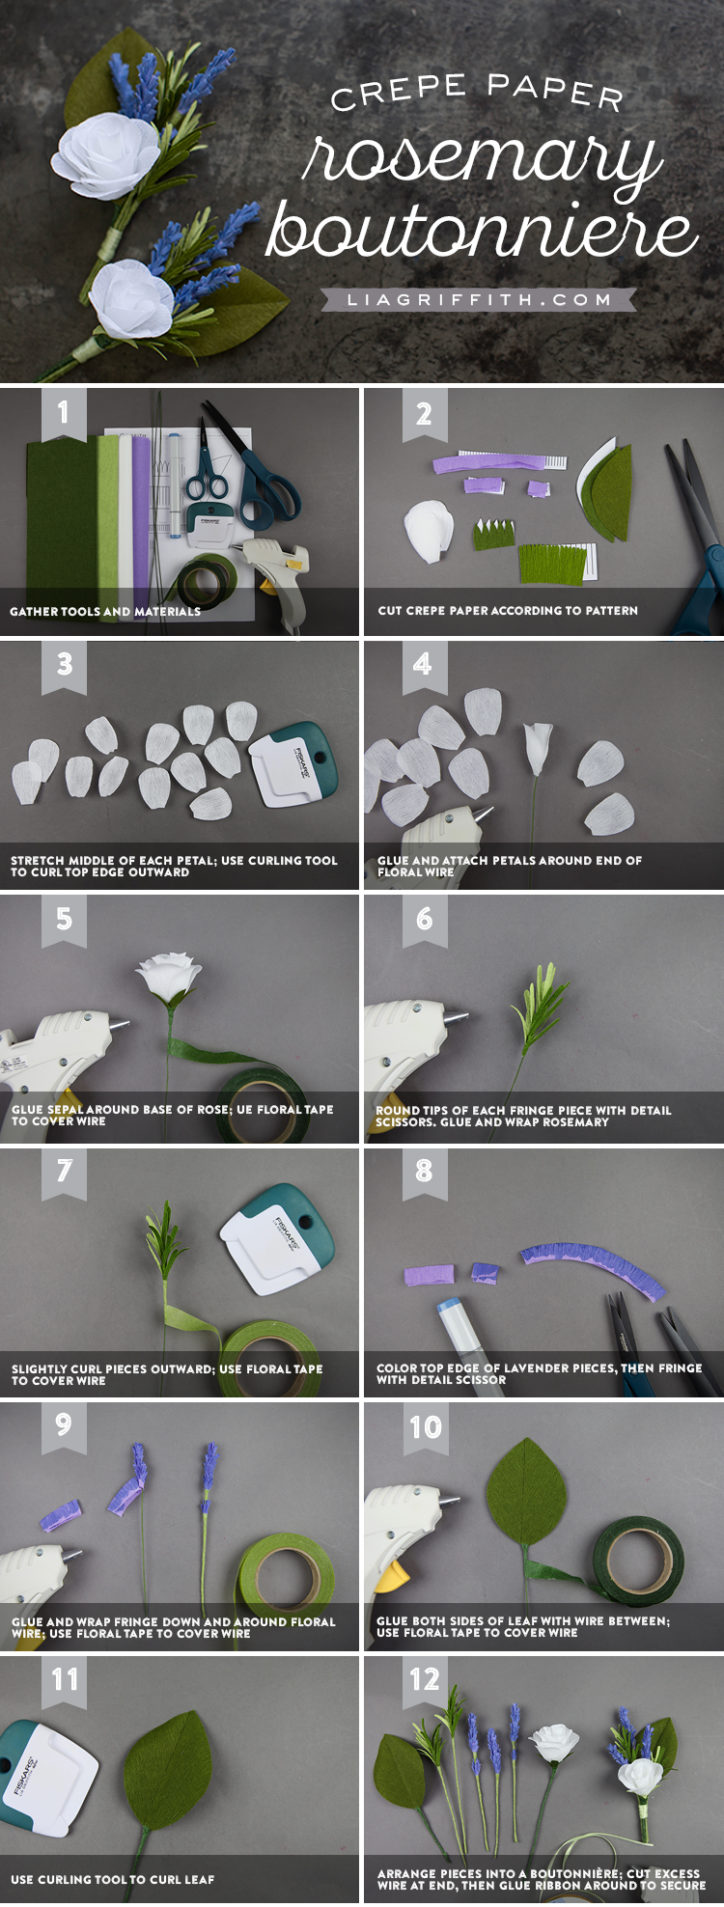 crepe paper rosemary boutonniere tutorial